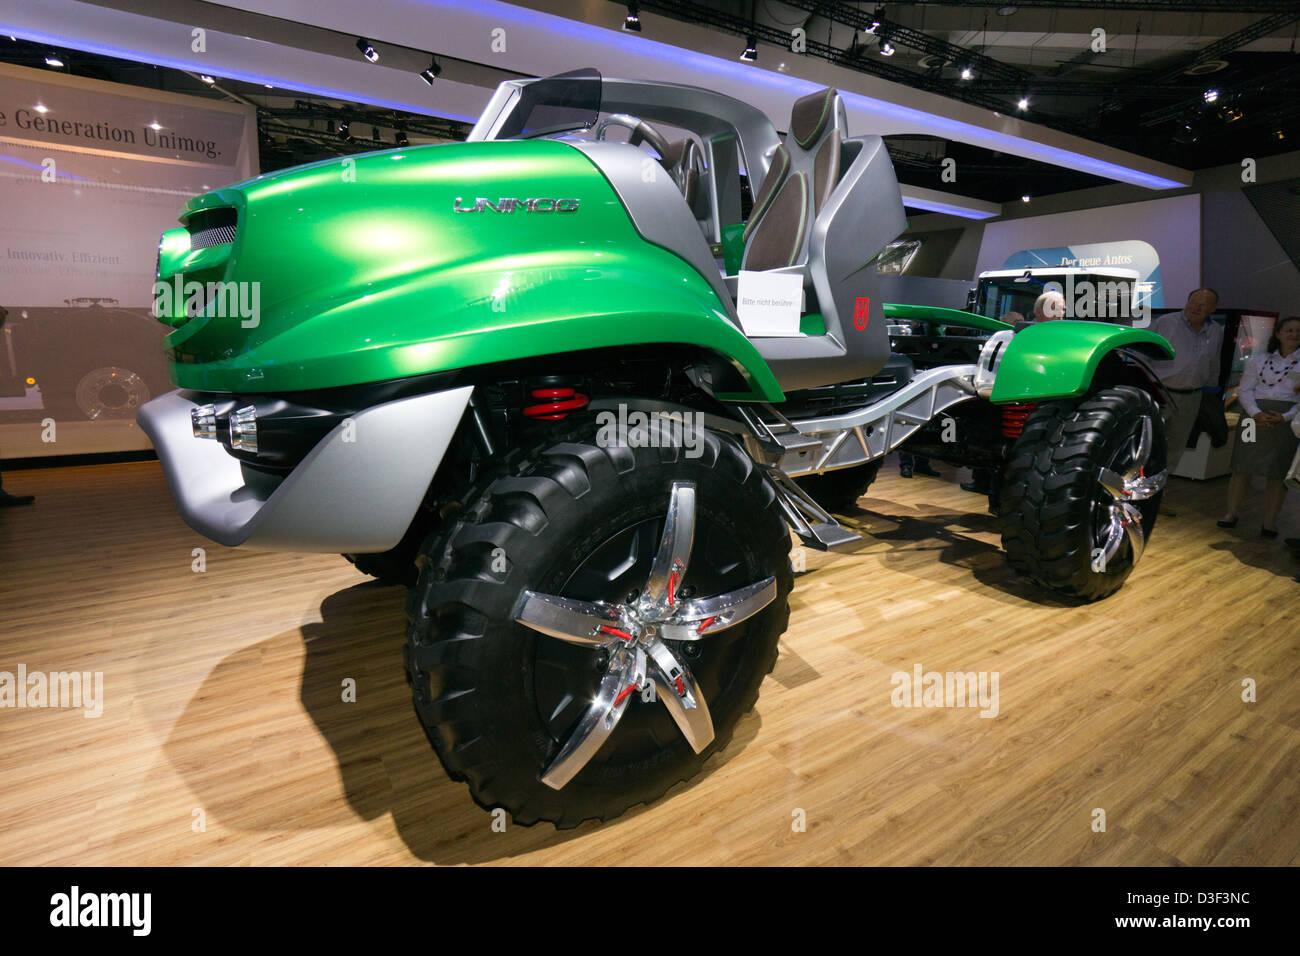 New Mercedes Benz Unimog  car at the IAA International Motor Show for Commercial Vehicles 2012. Hannover, Germany Stock Photo